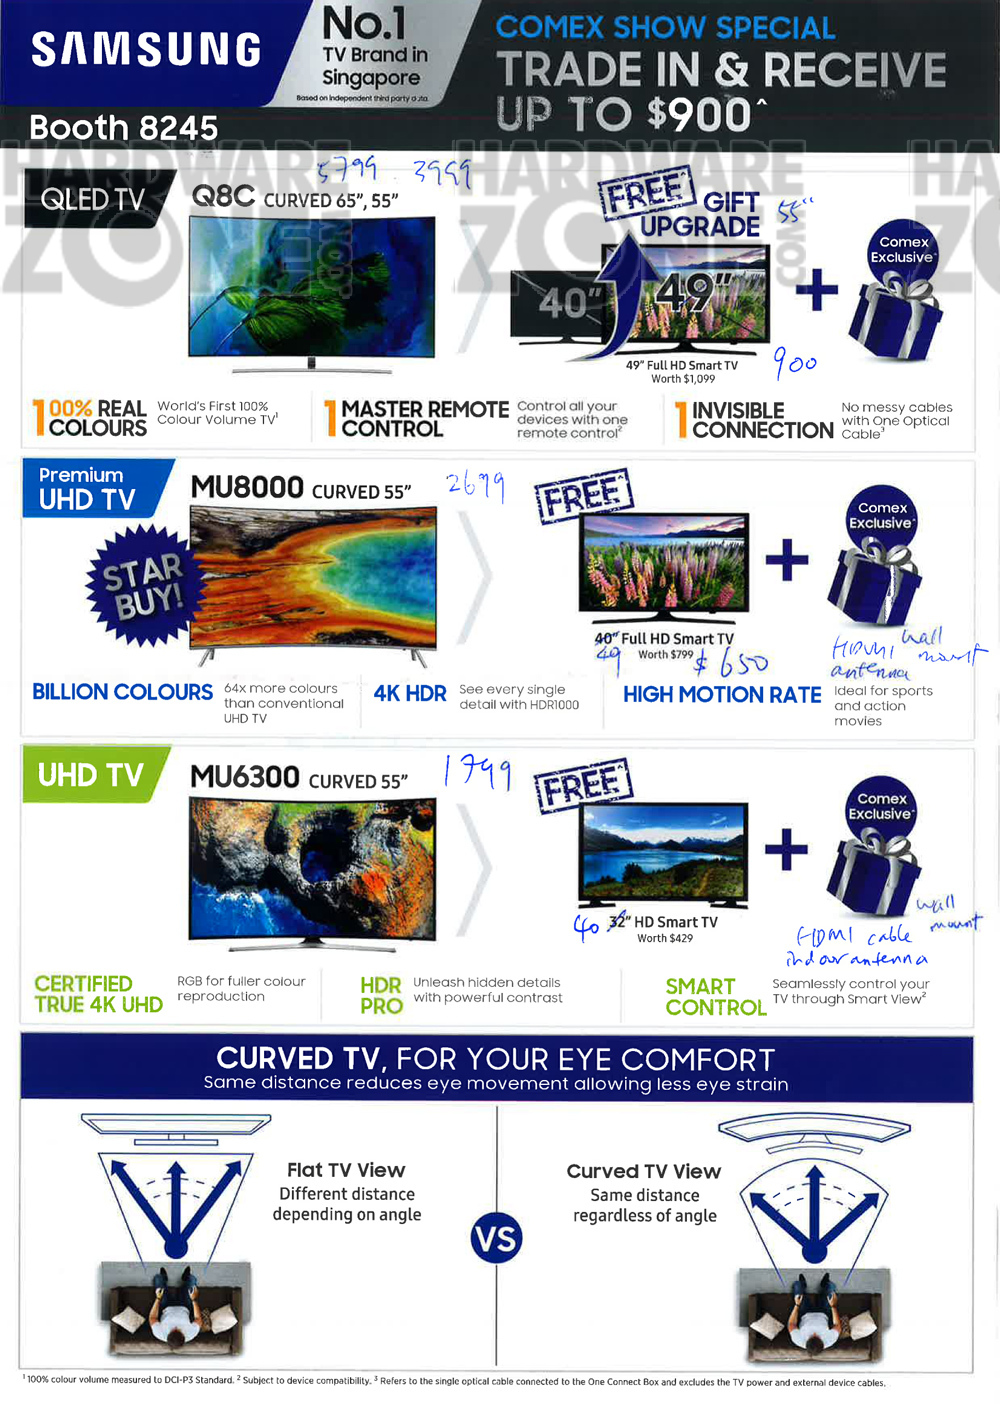 Samsung TVs - Pg 1 Brochures from COMEX SHOW 2017 Singapore